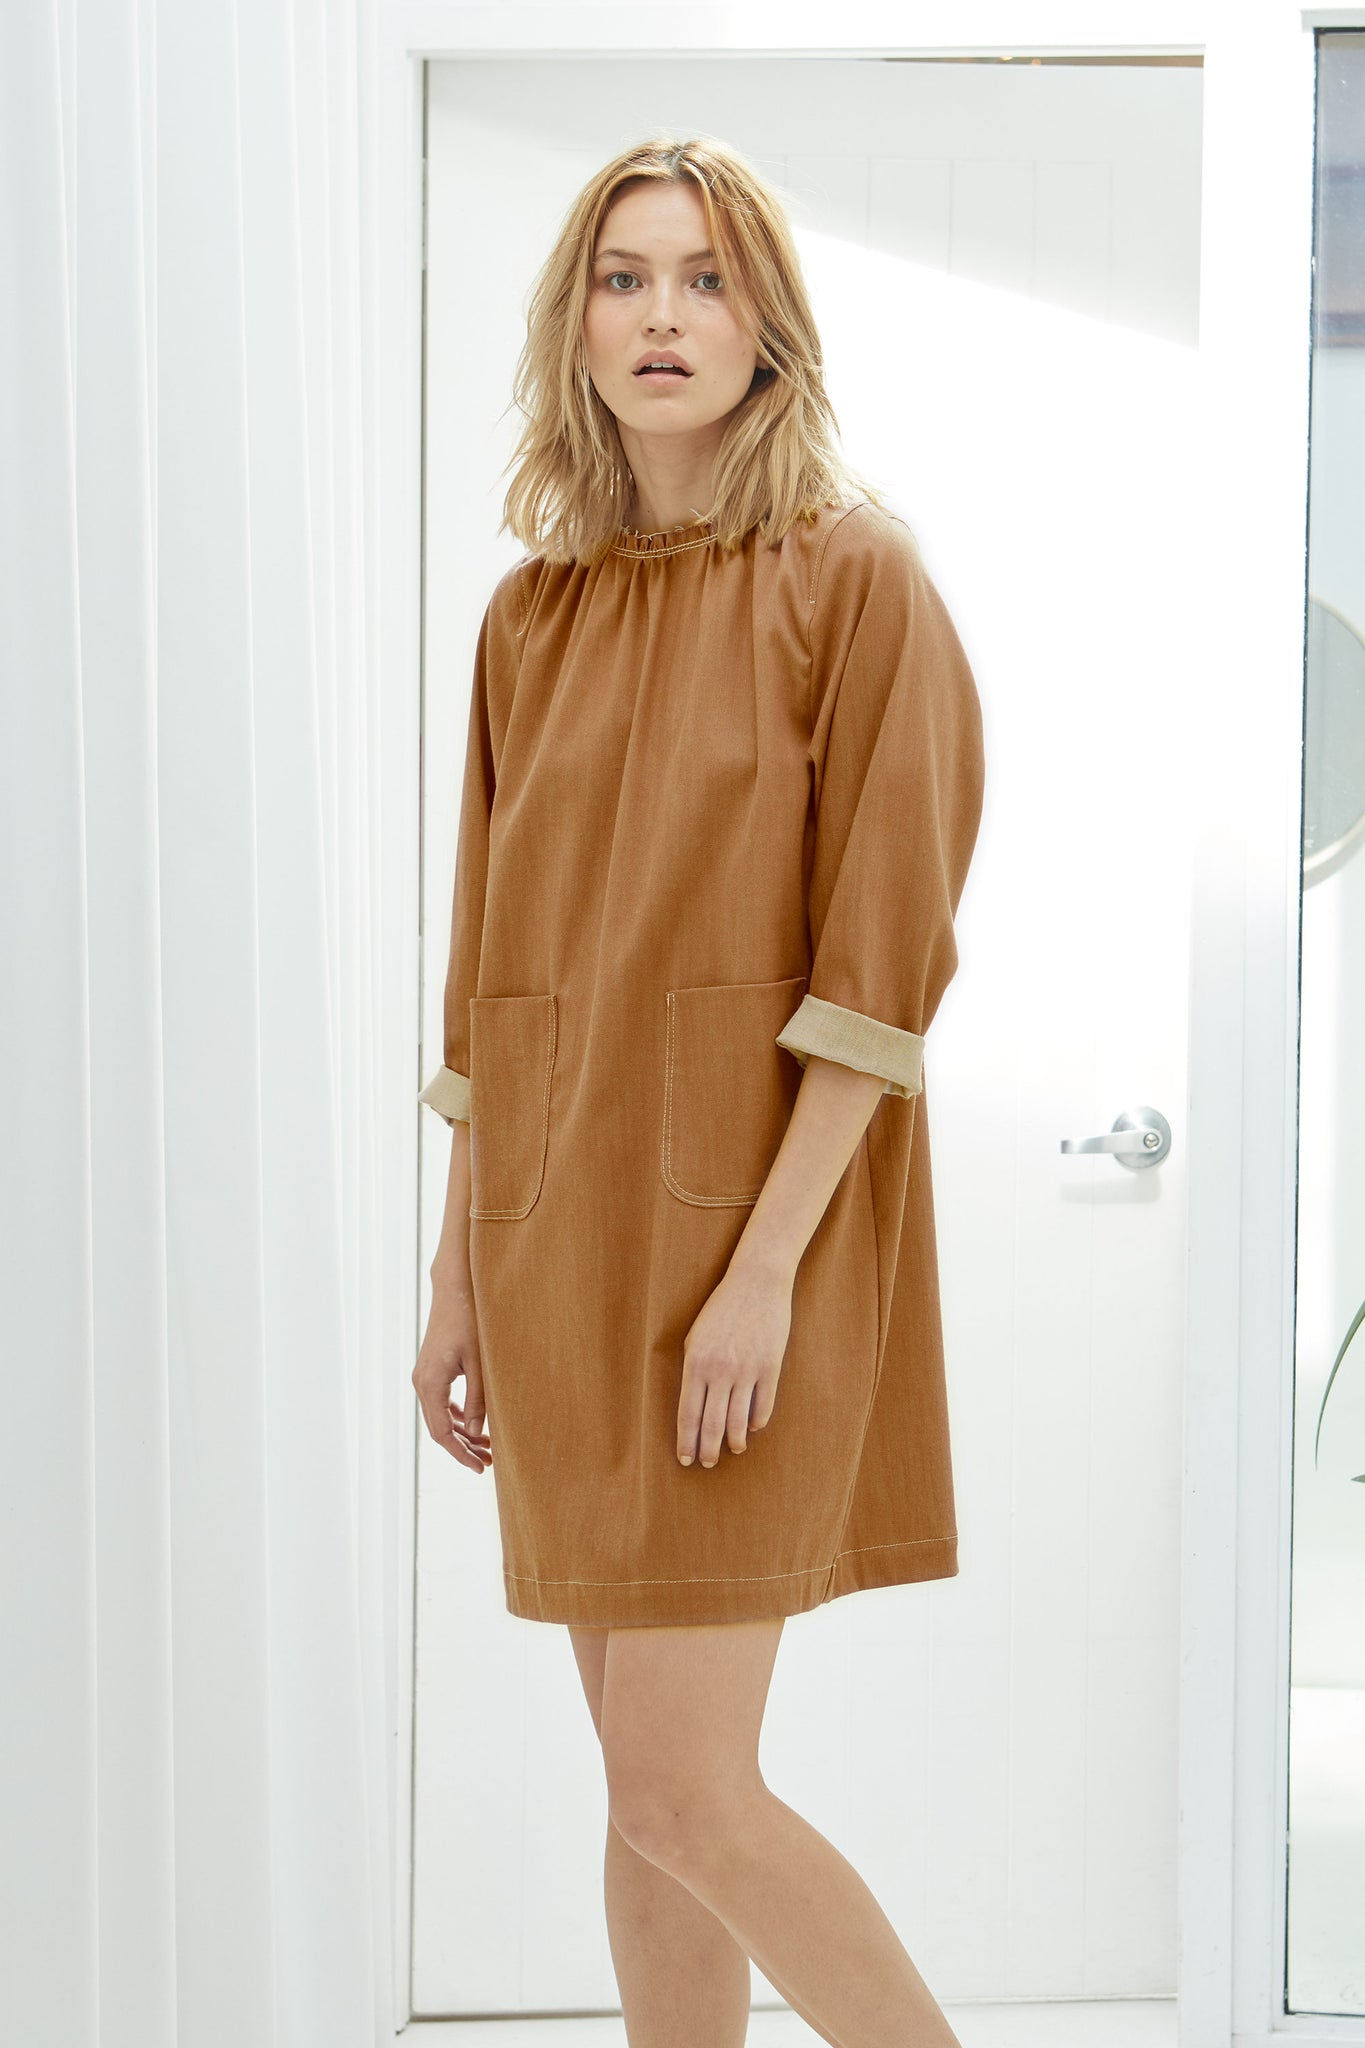 NZ Fashion Clothing Boutique gregorythelabel Gregory SS18 Pedro Dress Made in NZ